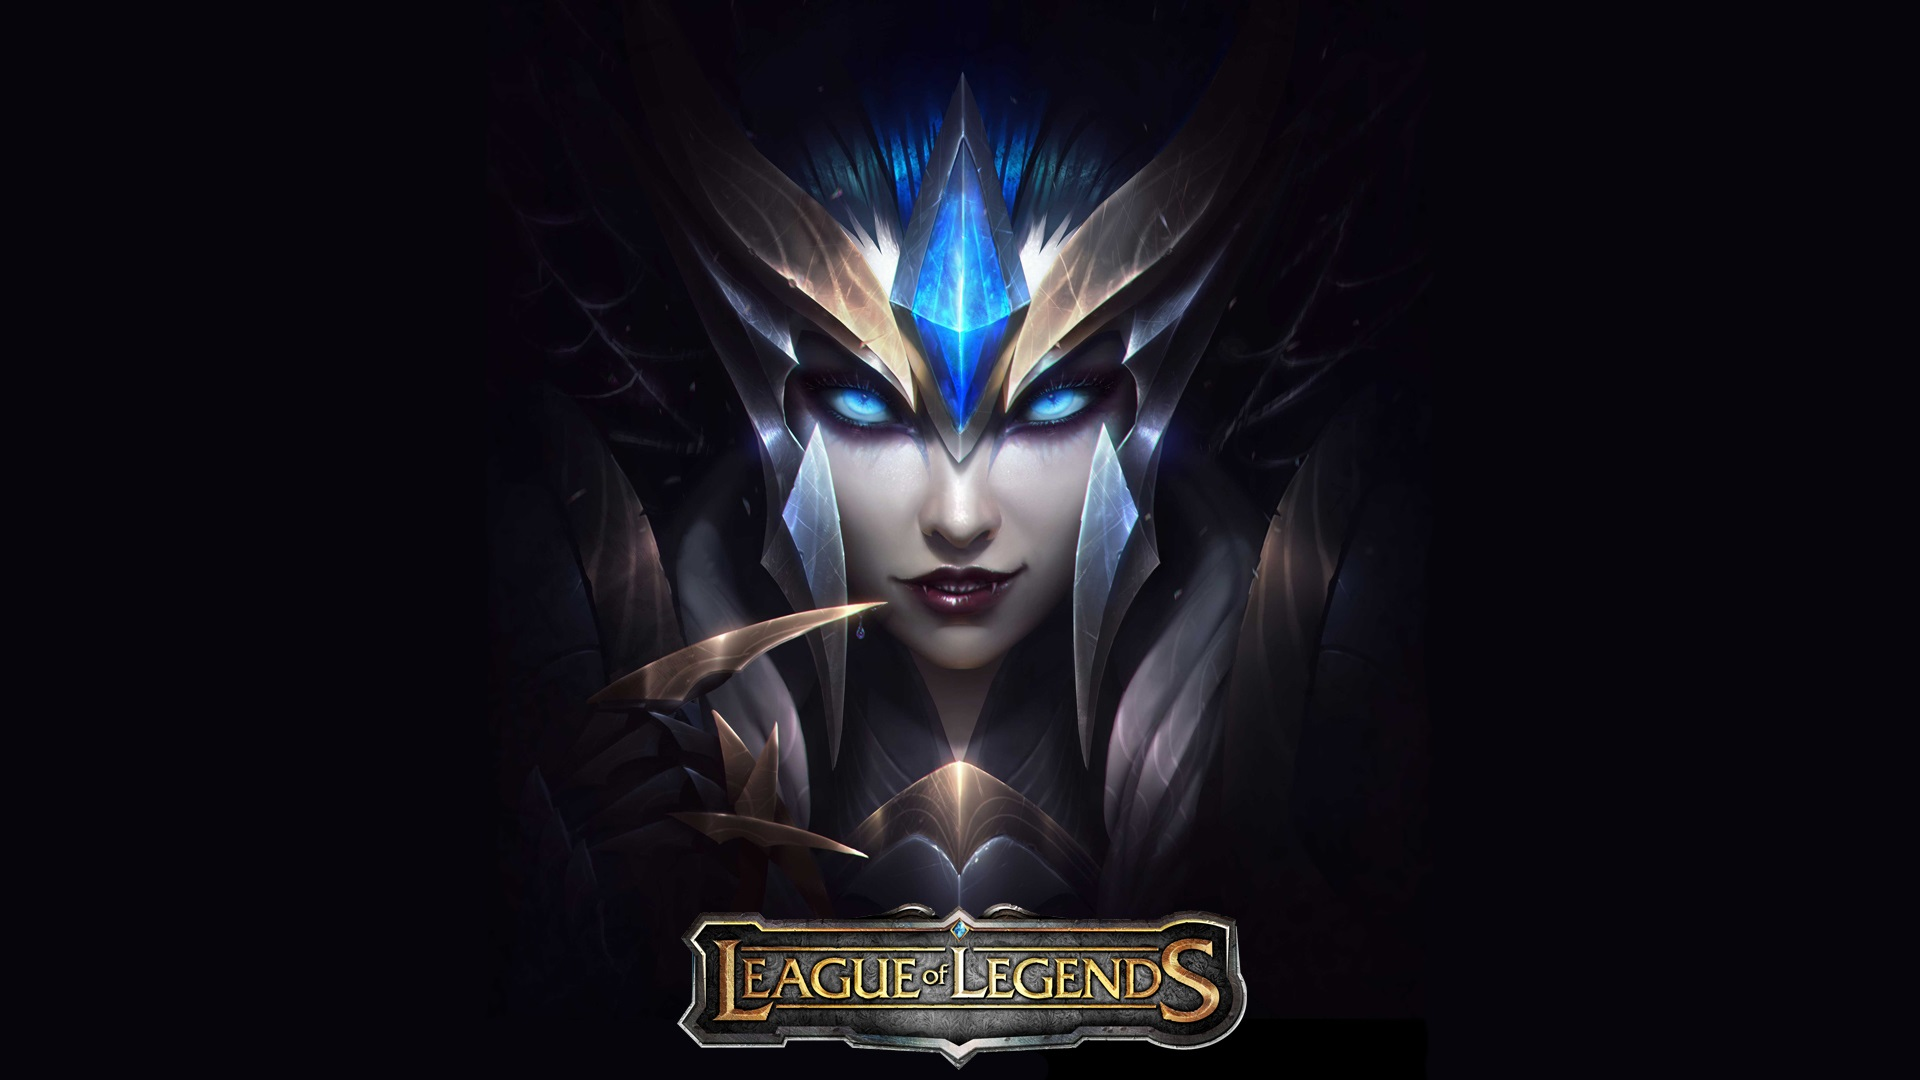 Wallpaper League Of Legends Armor Girl 1920x1080 Full Hd